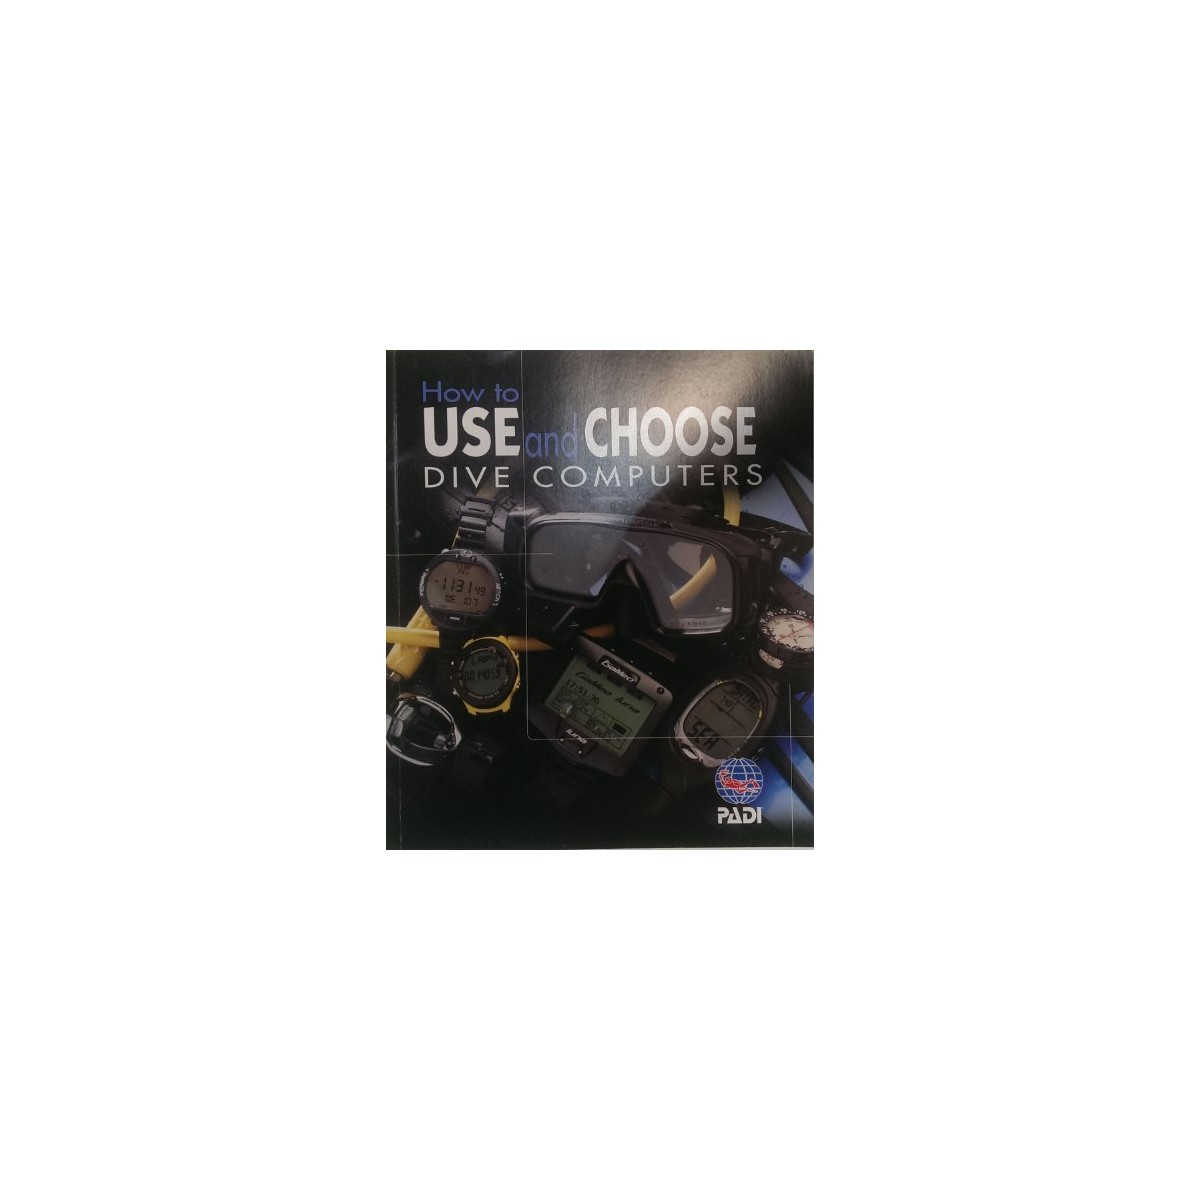 PADI How to Use and Choose Dive Computers Book Manual